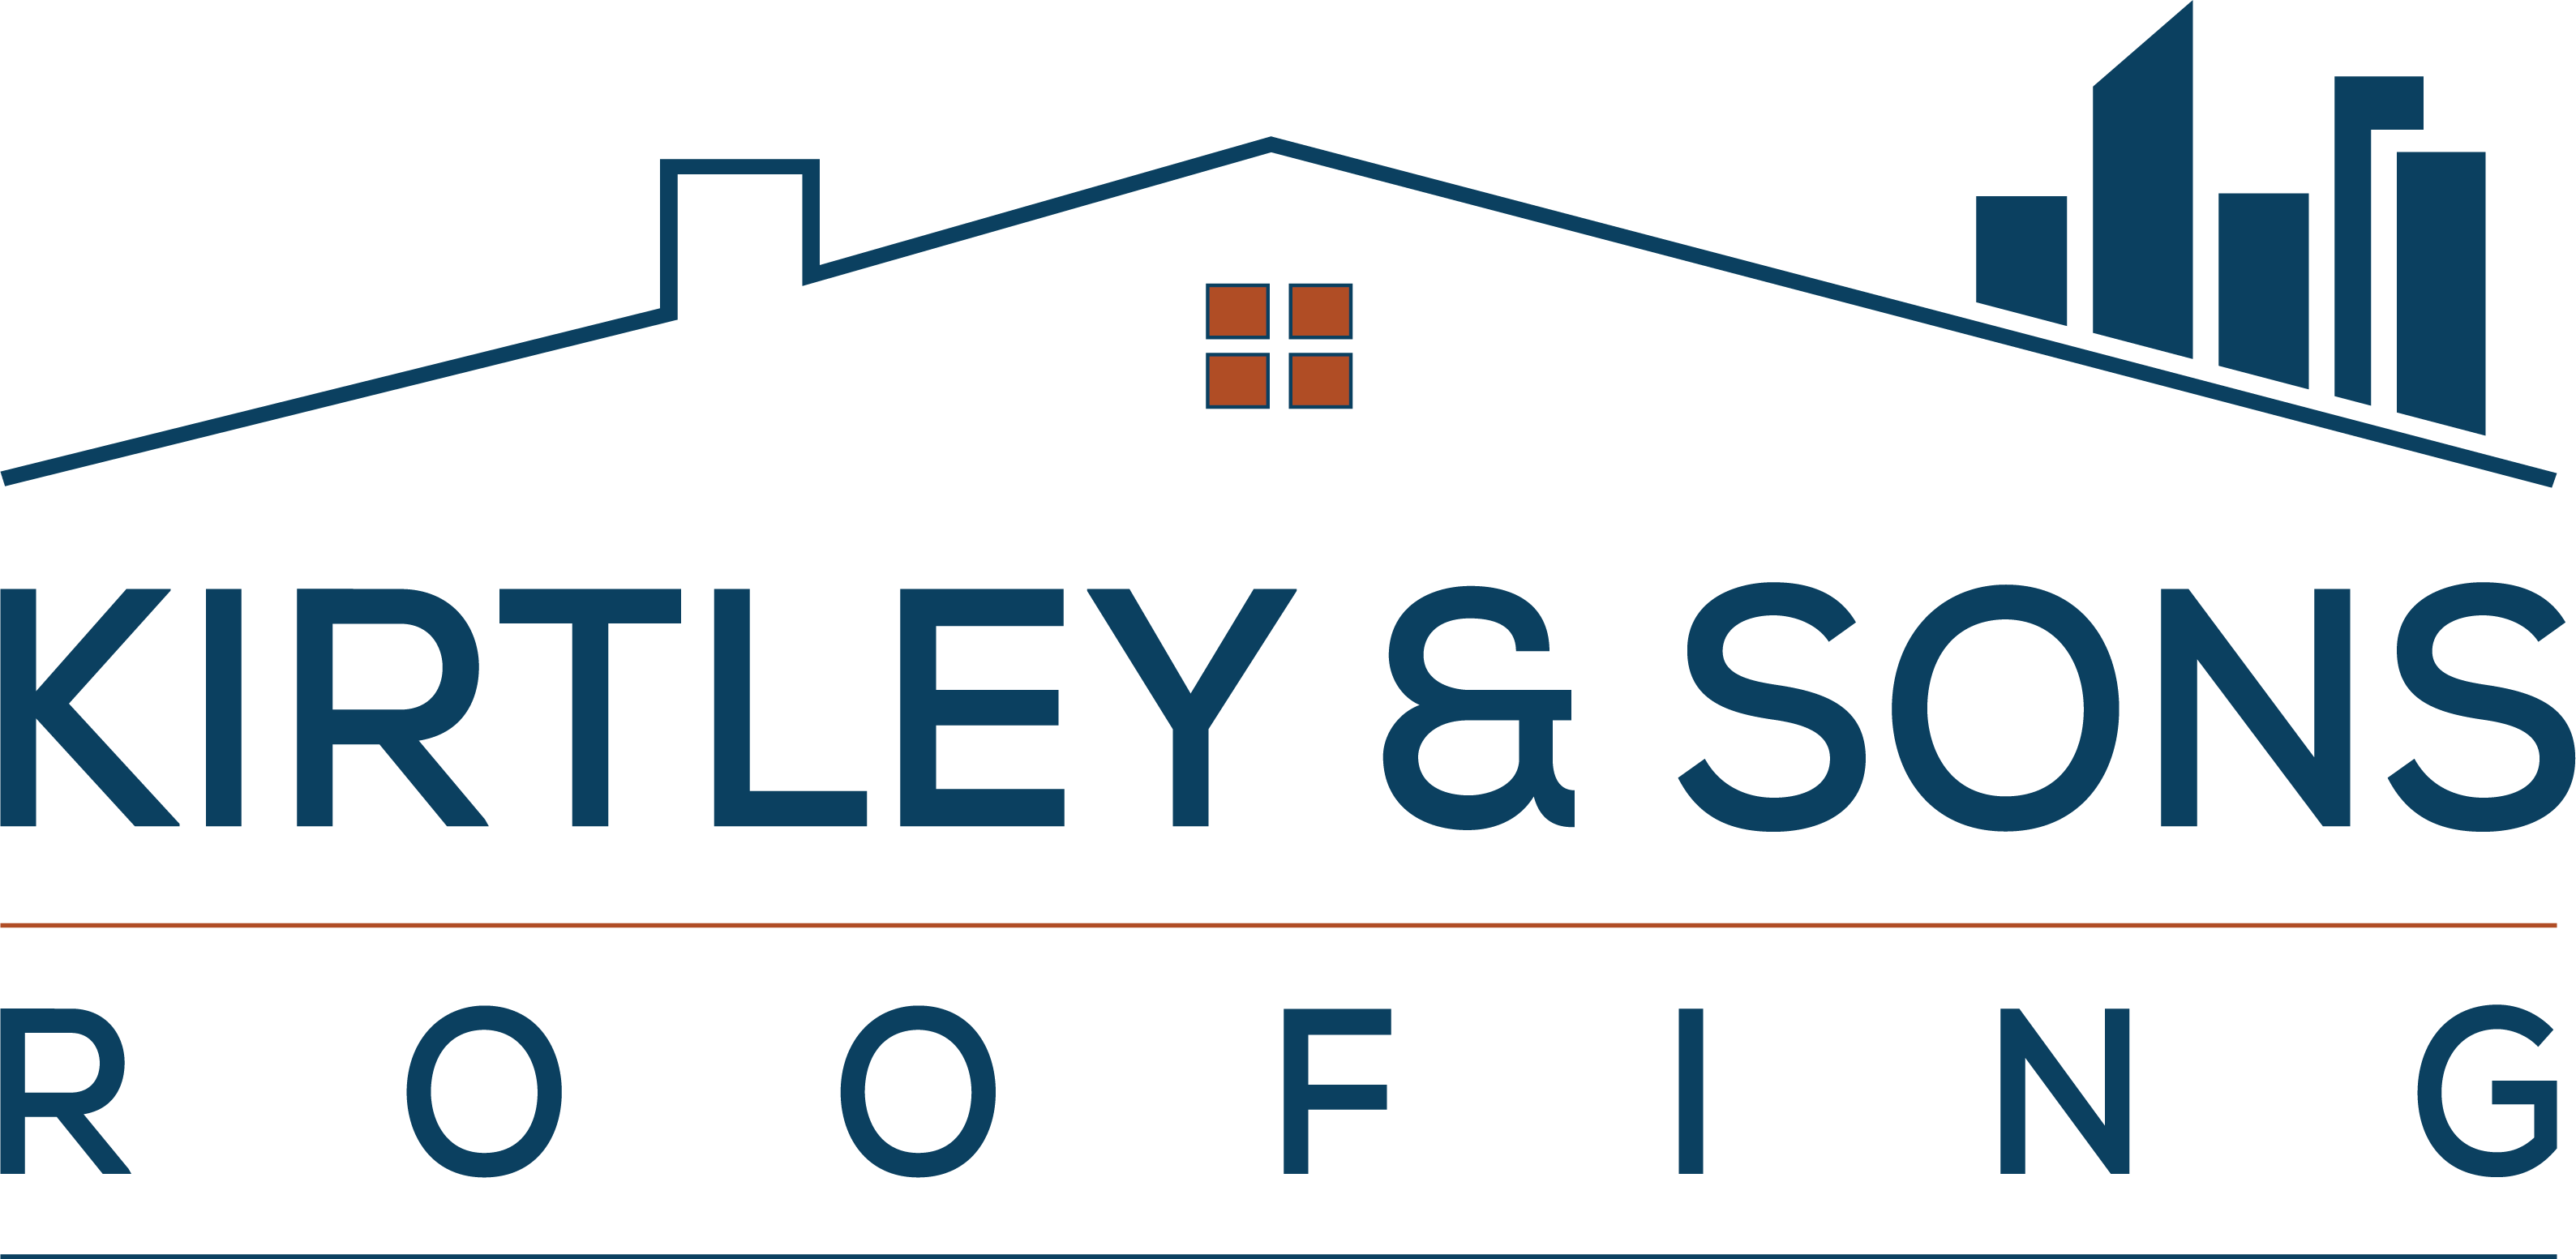 Kirtley & Sons Roofing TX